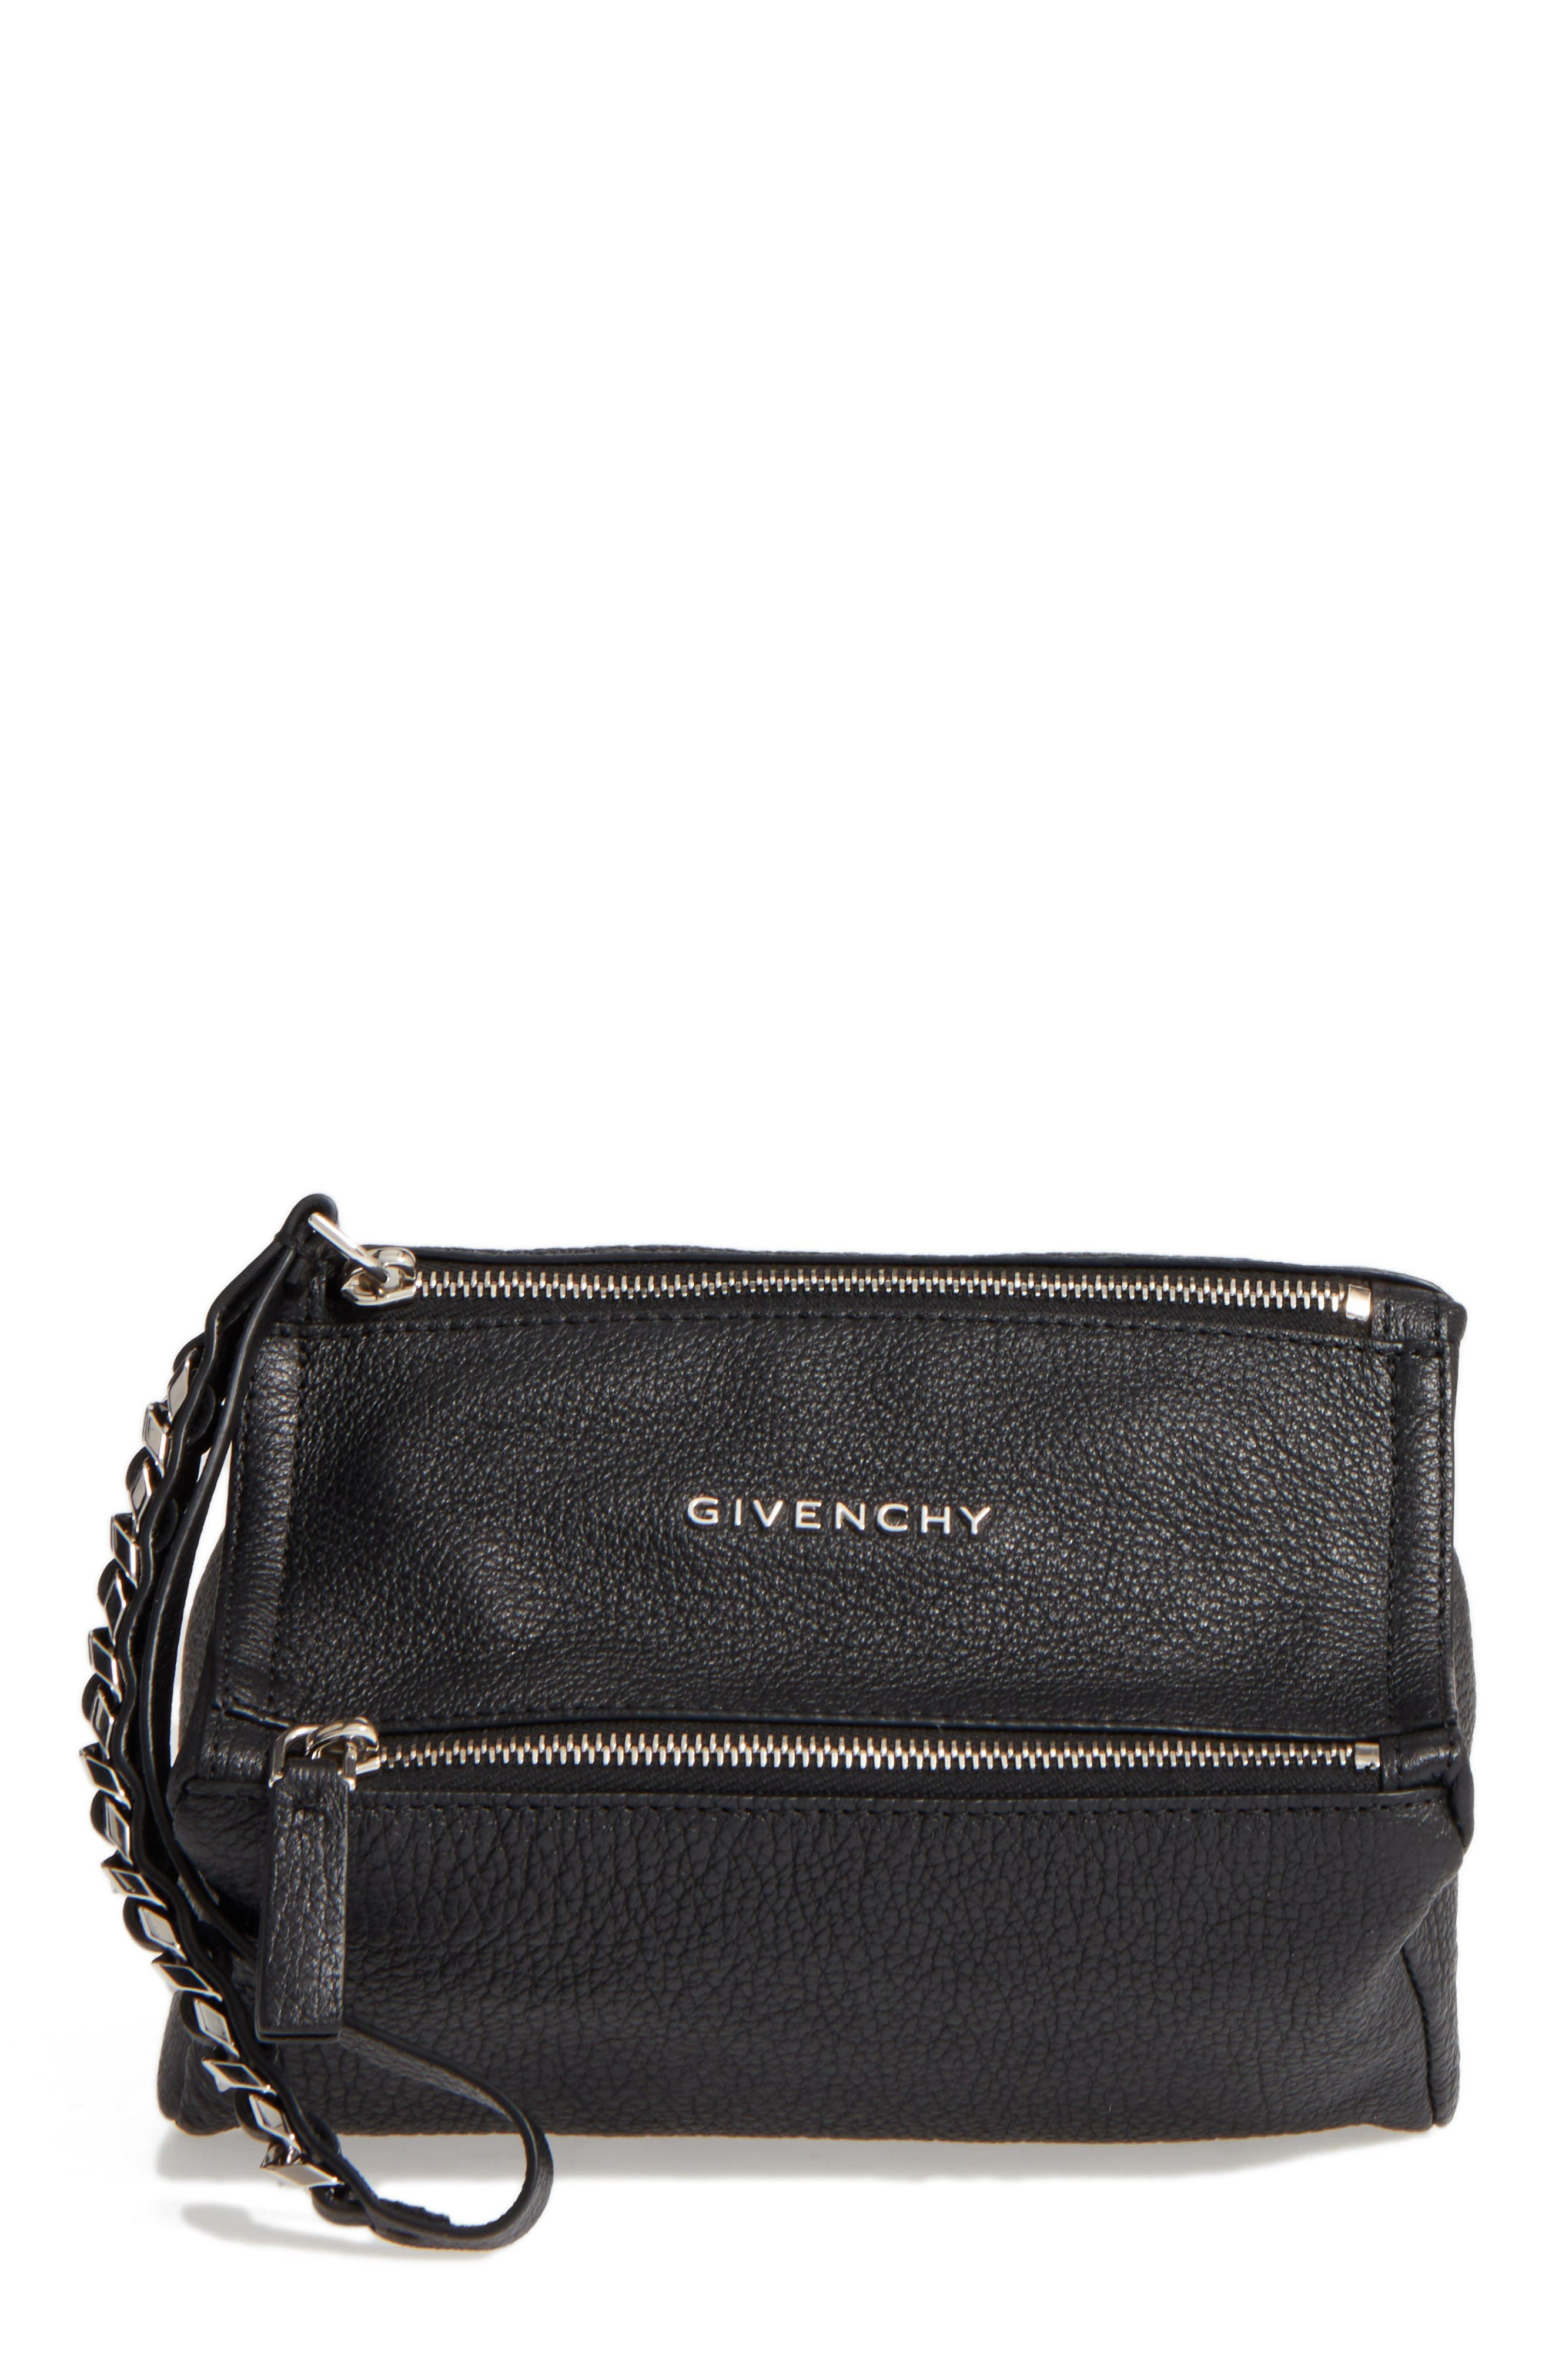 Alternate Image 1 Selected - Givenchy Pandora Wristlet Clutch